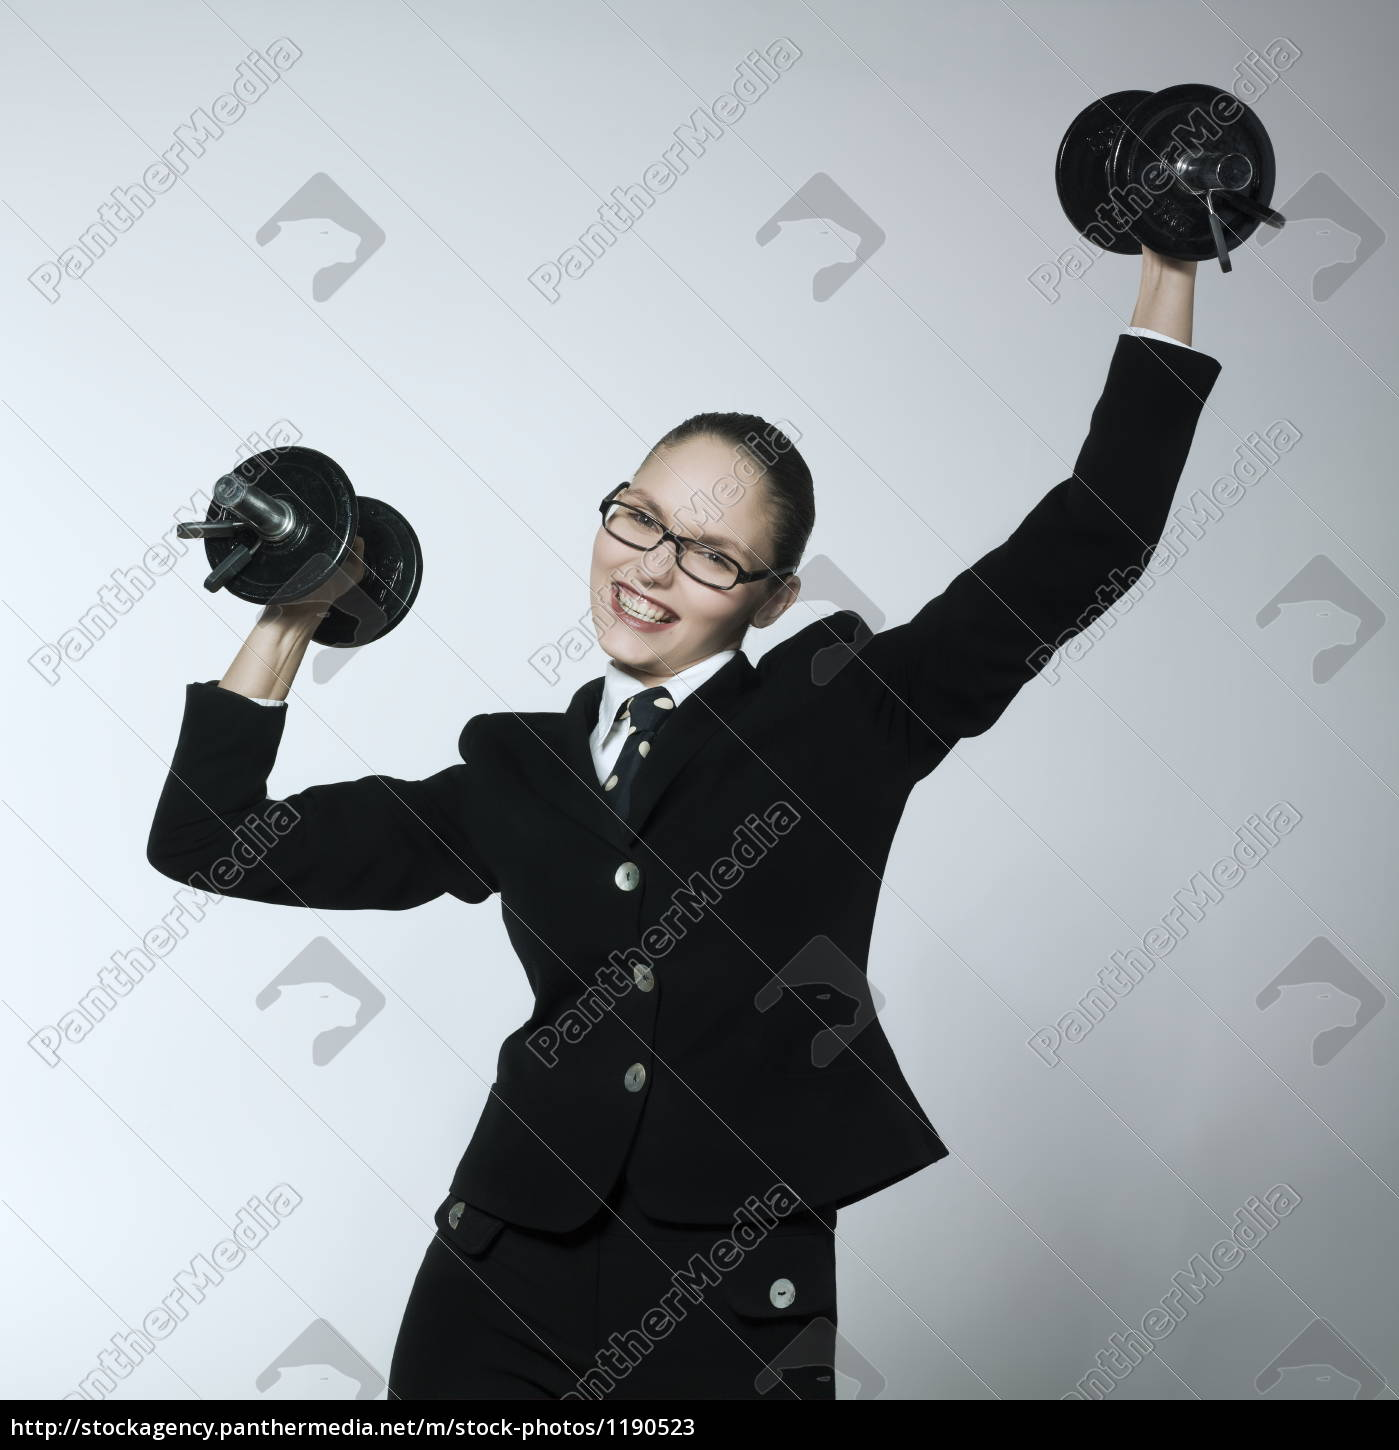 woman, strong, wellbeing, businesswoman, career woman, weights - 1190523